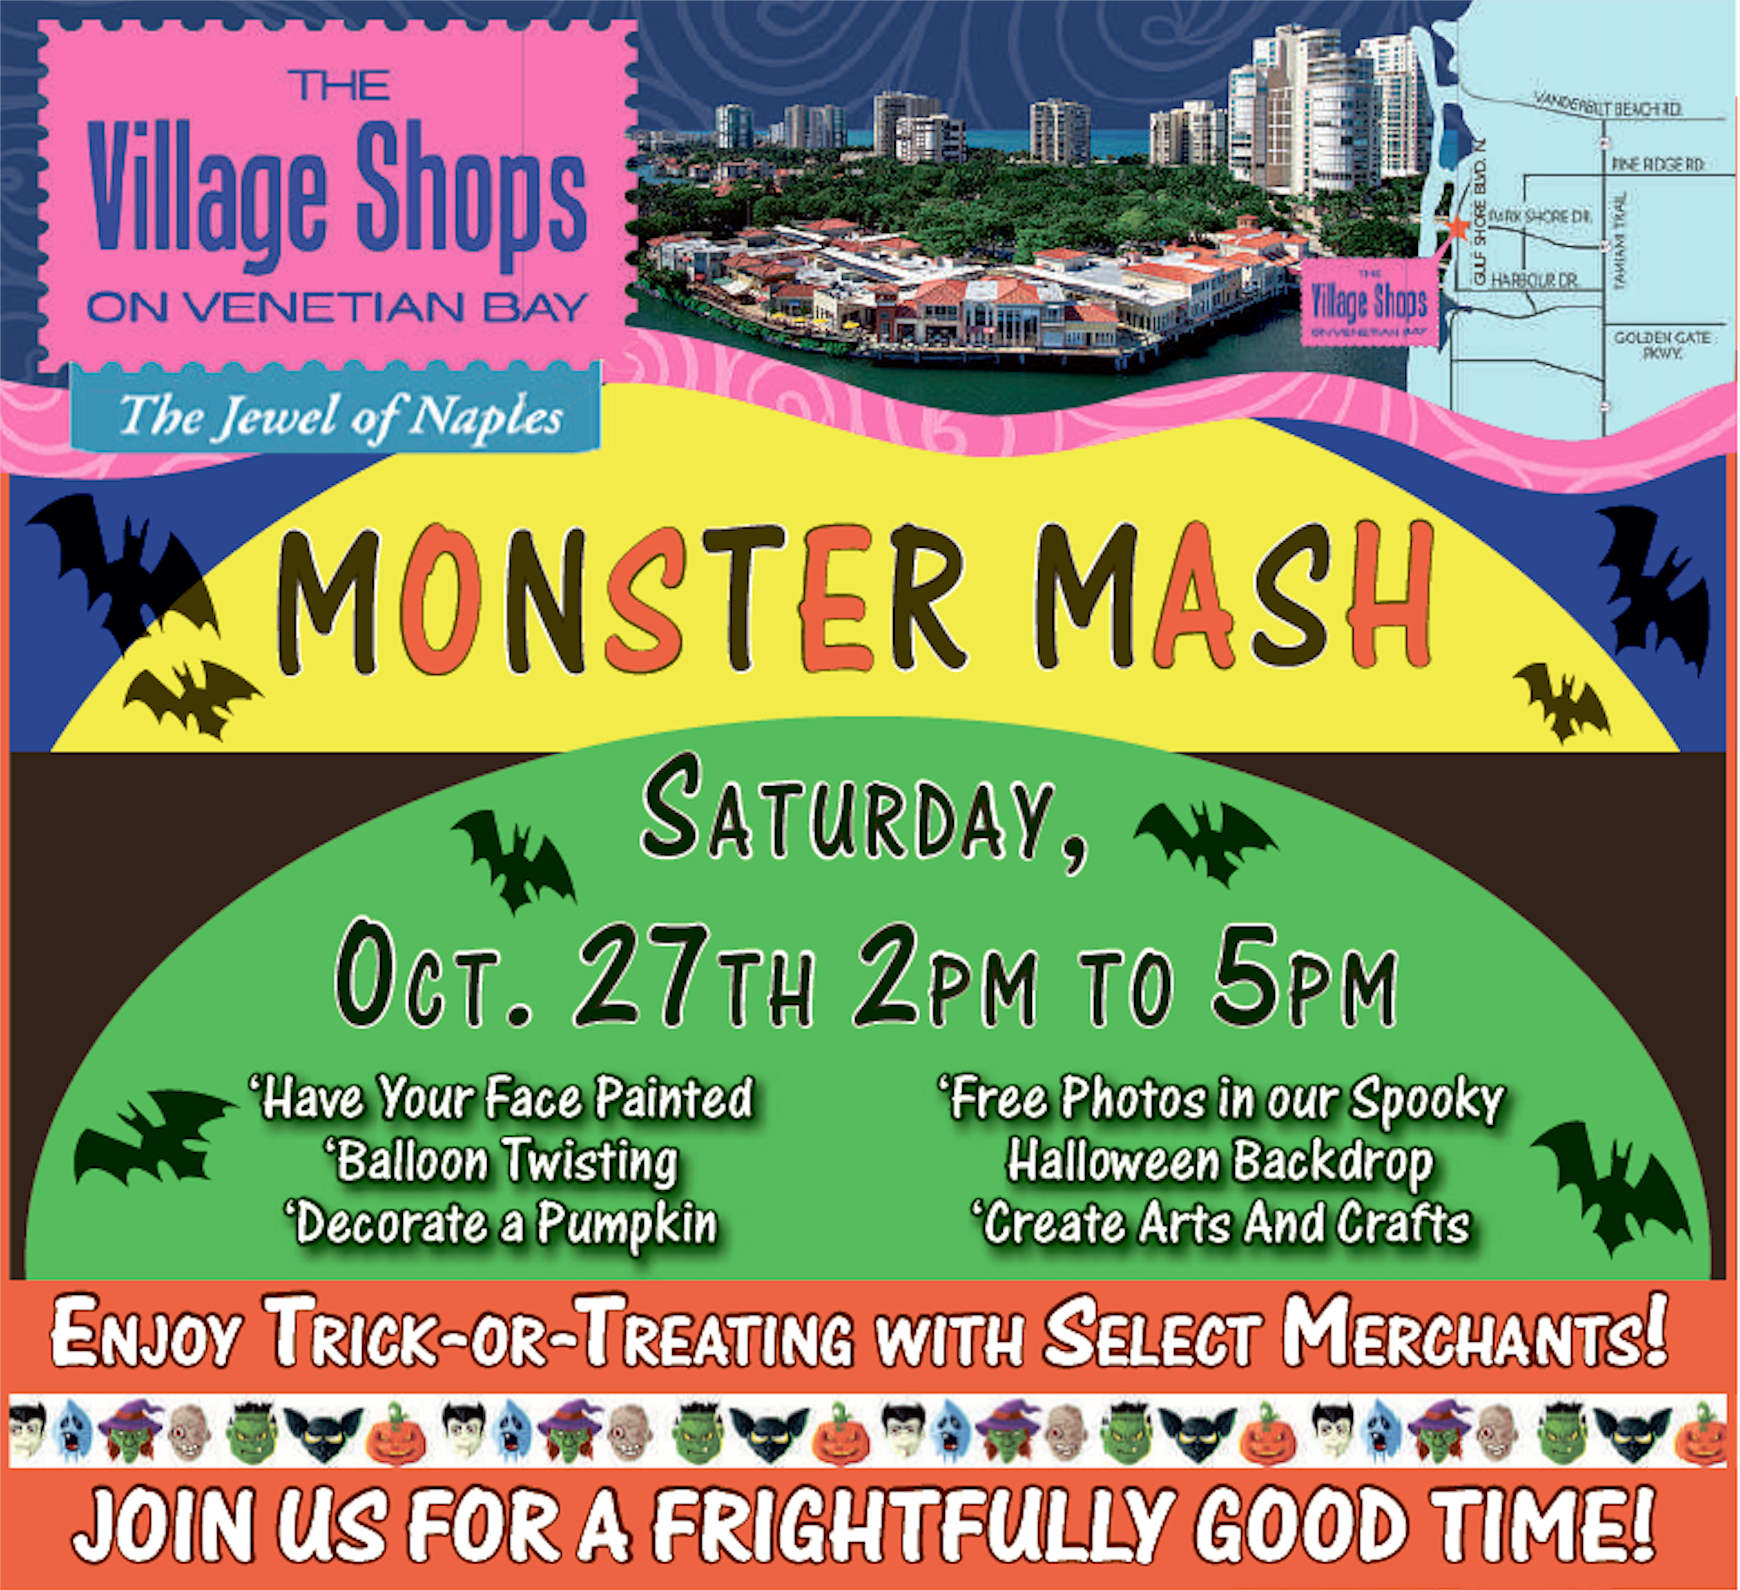 Monster Mash at The Village Shops on Venetian Bay!